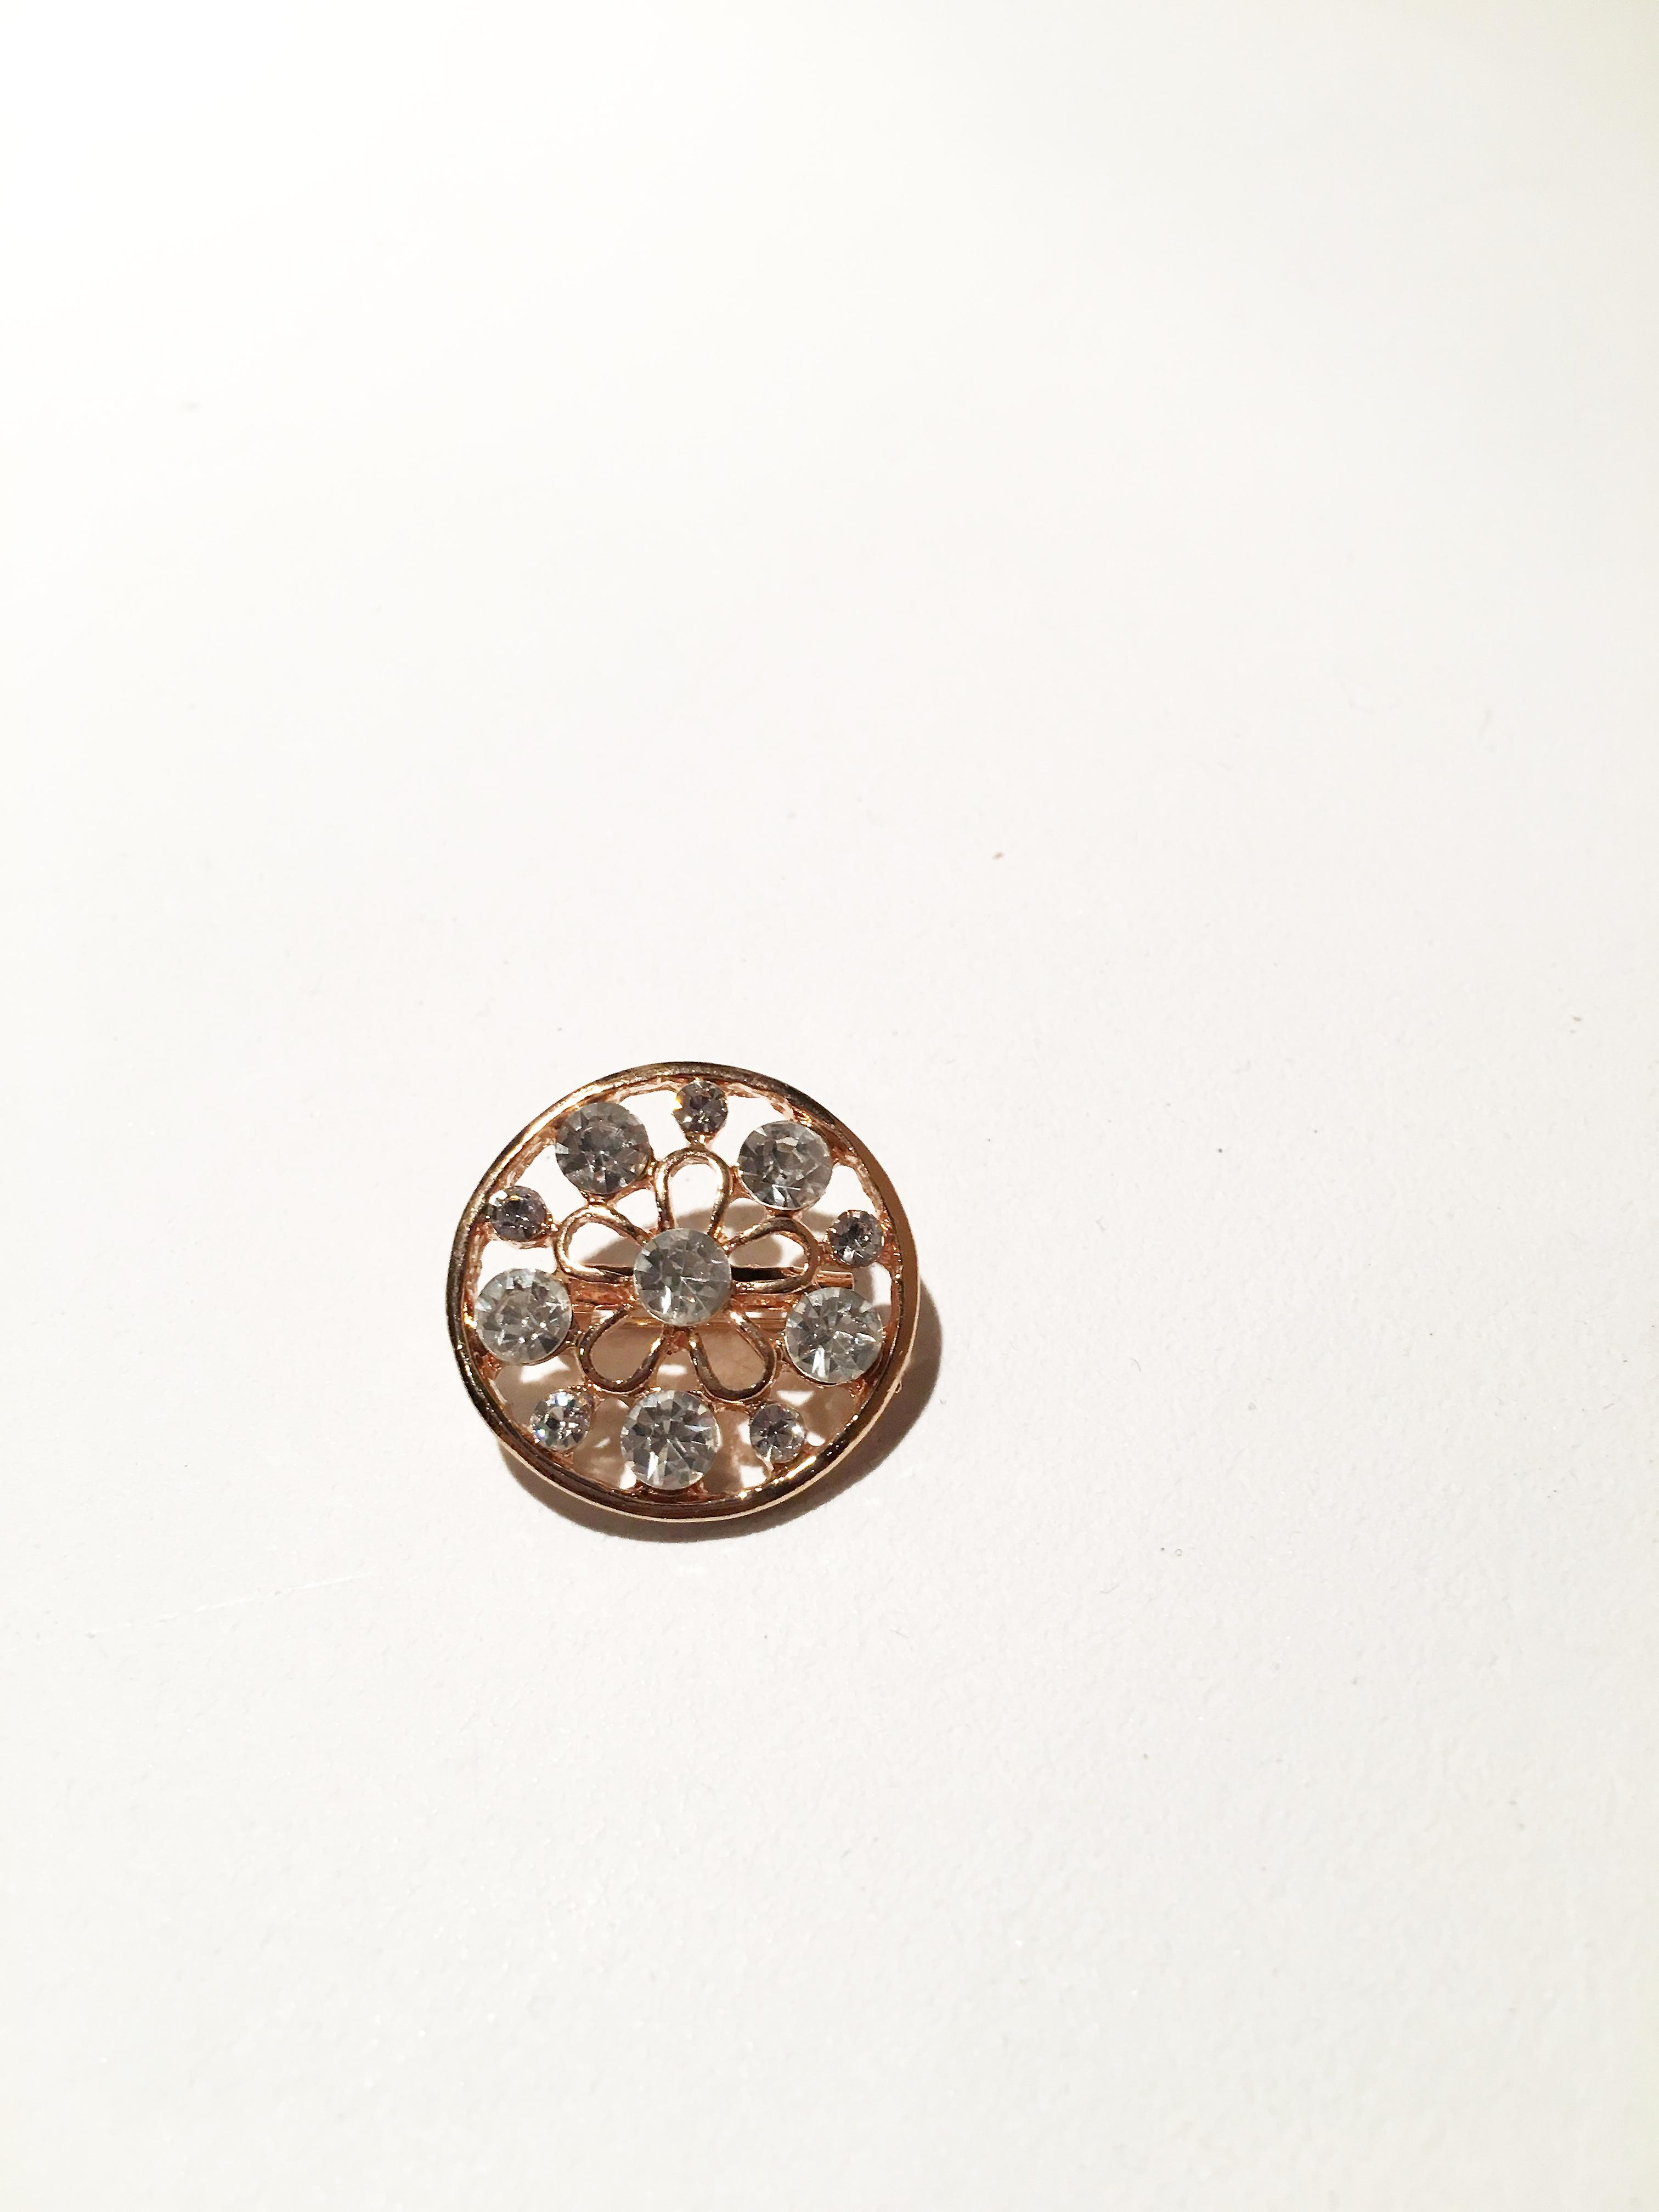 Antique gold and silver circular brooch